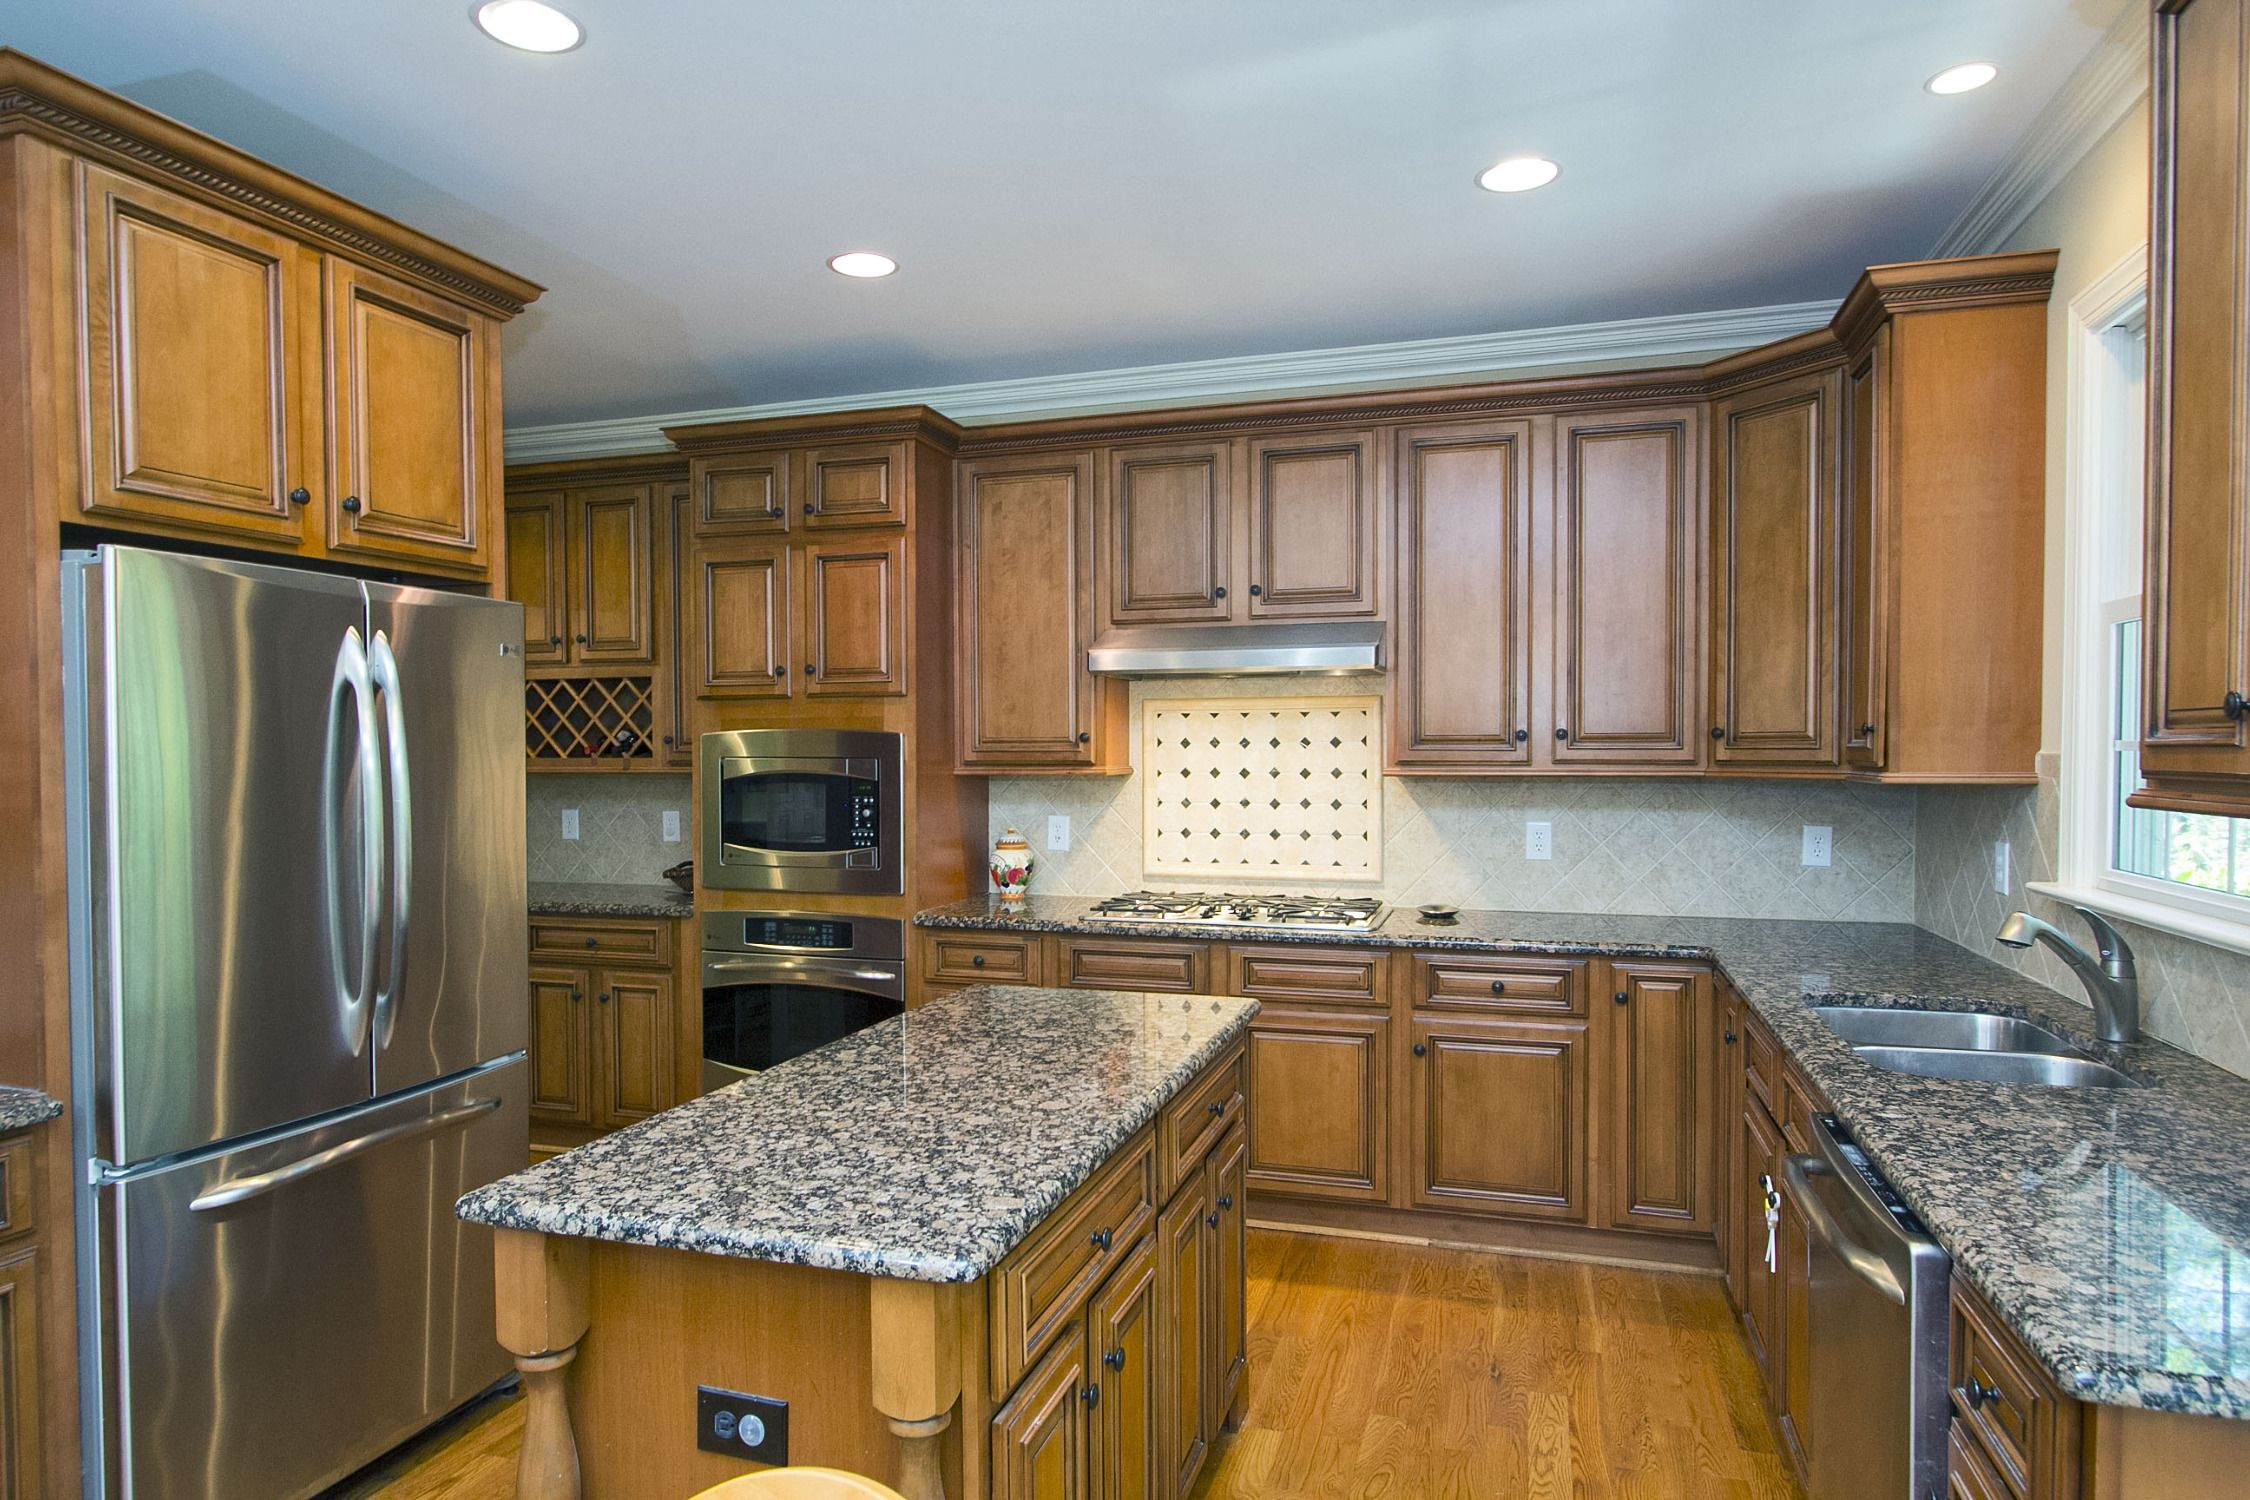 Cook In Perfection In This Custom Gourmet Kitchen Stainless Appliances Gas Cooking Center Island Granite Cou Granite Countertops Walk In Pantry Built Ins